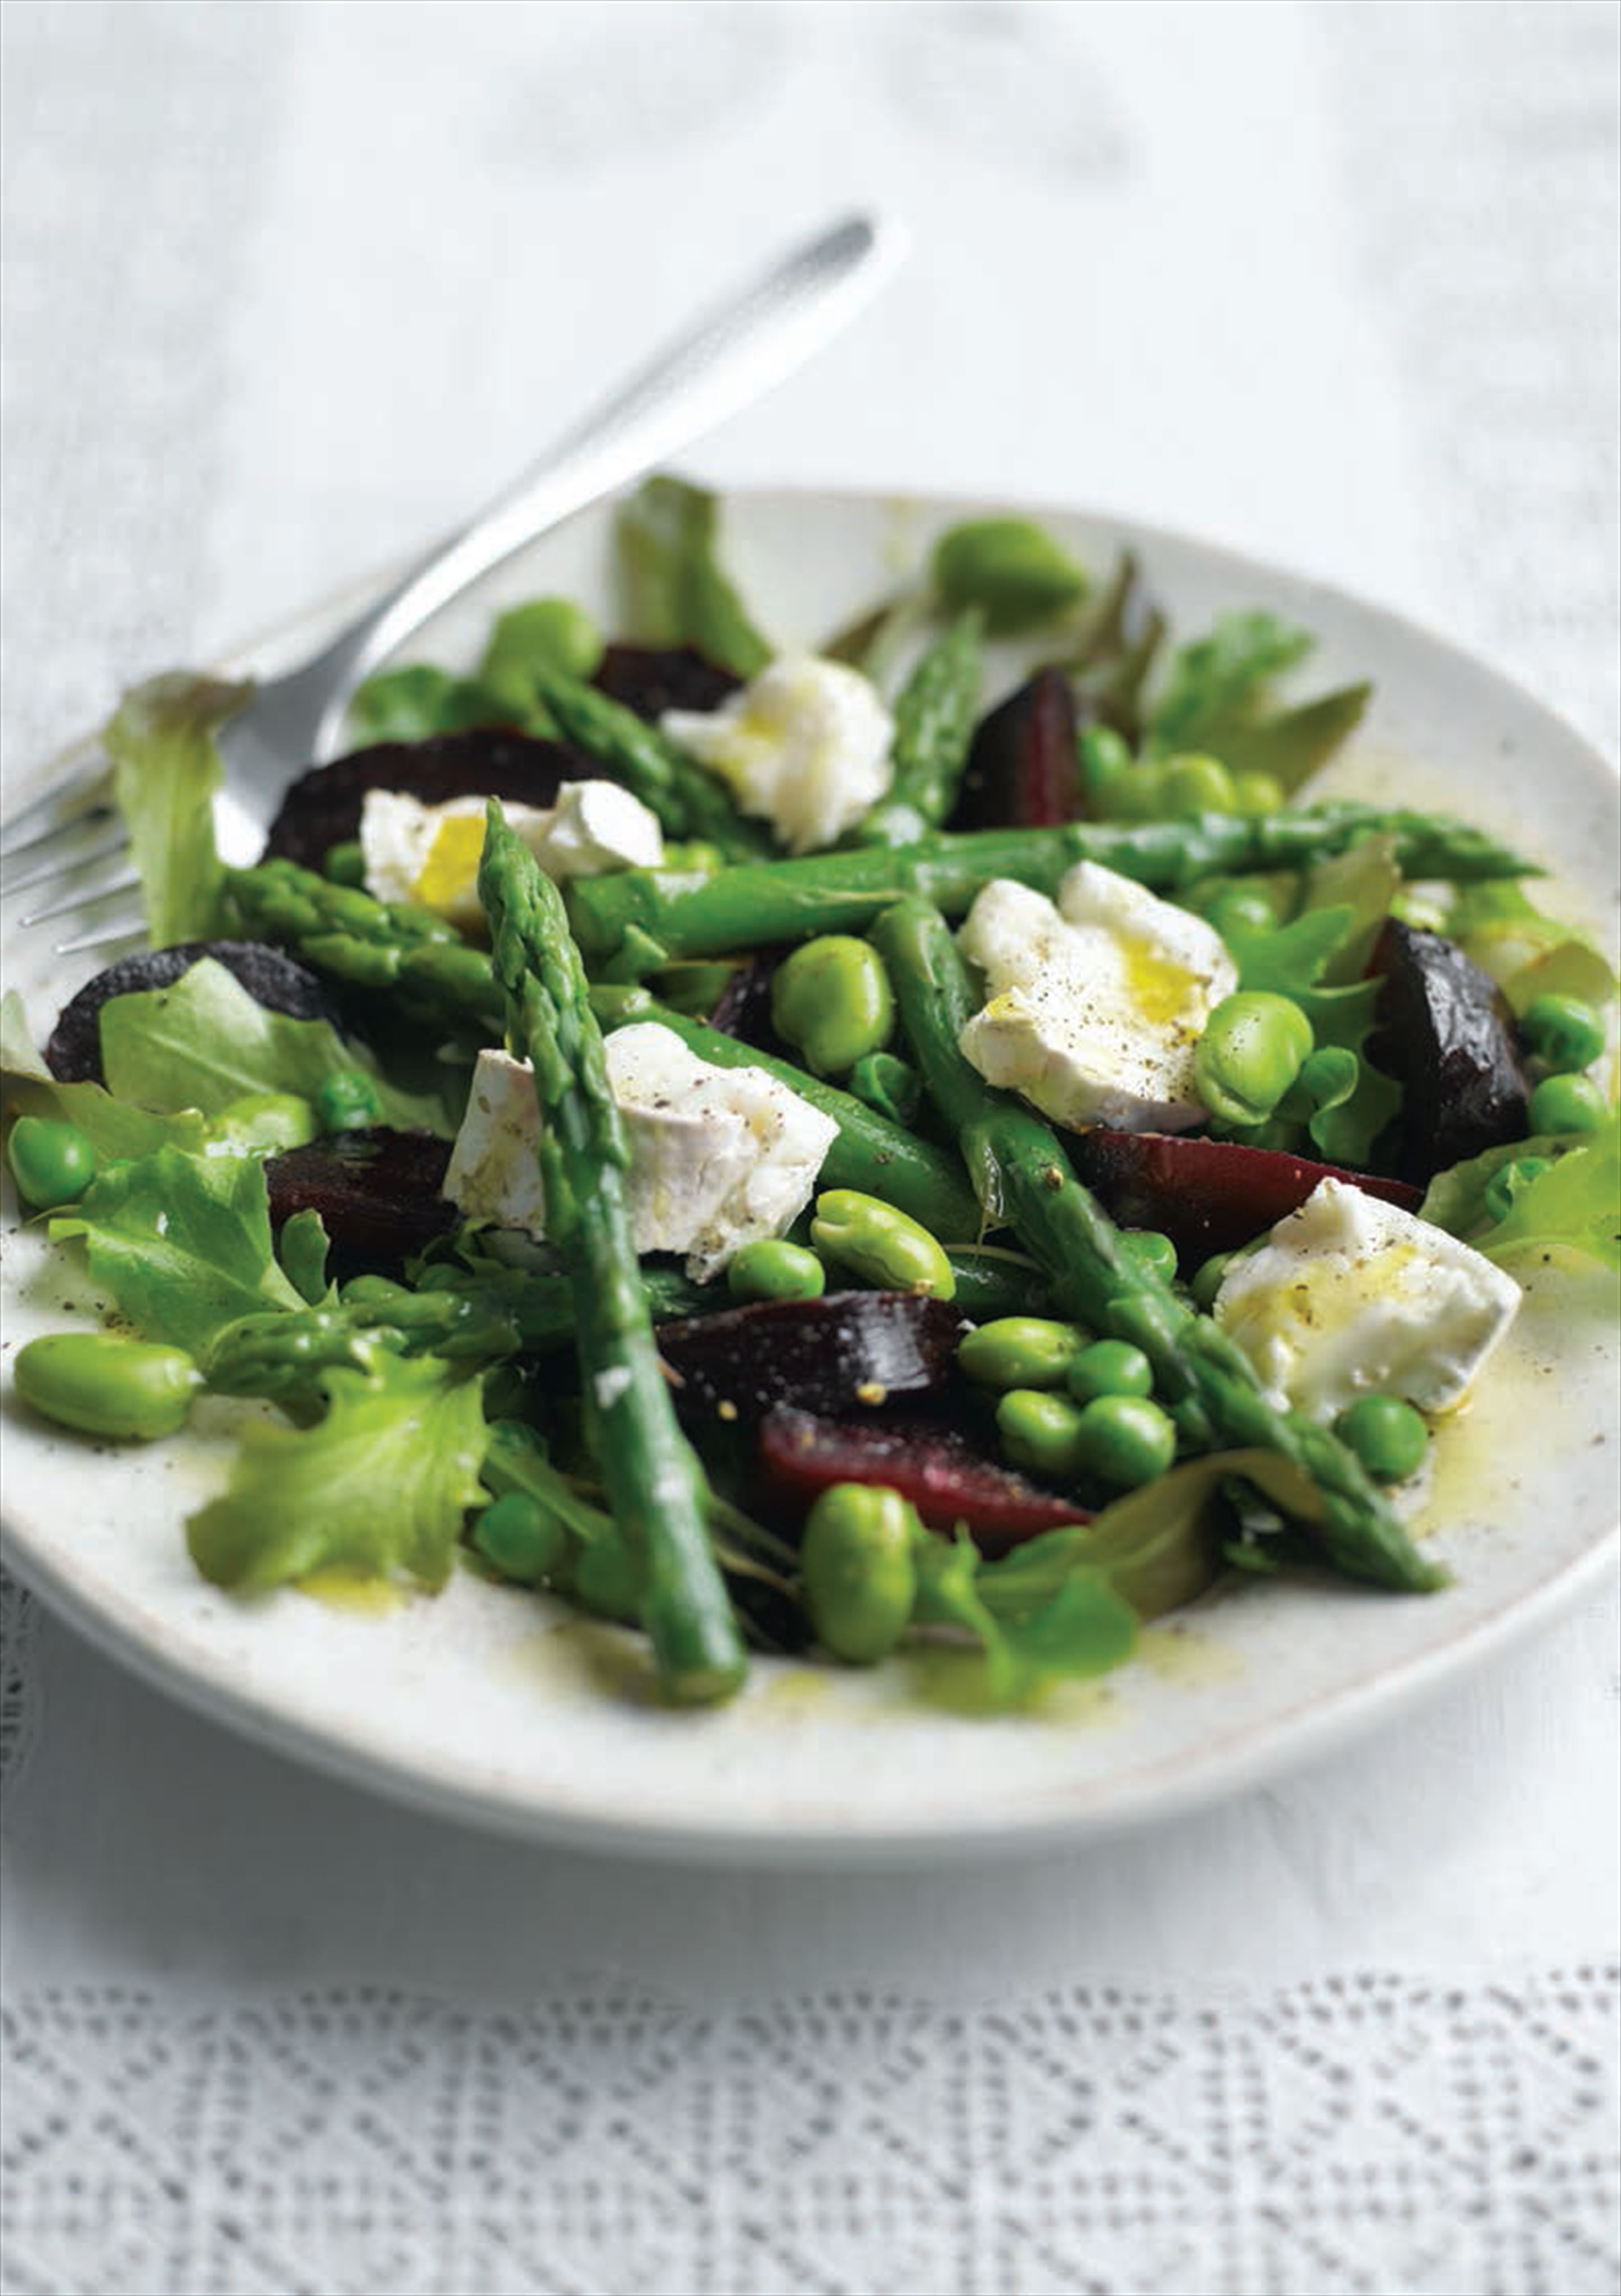 Goat's cheese, beetroot and asparagus salad